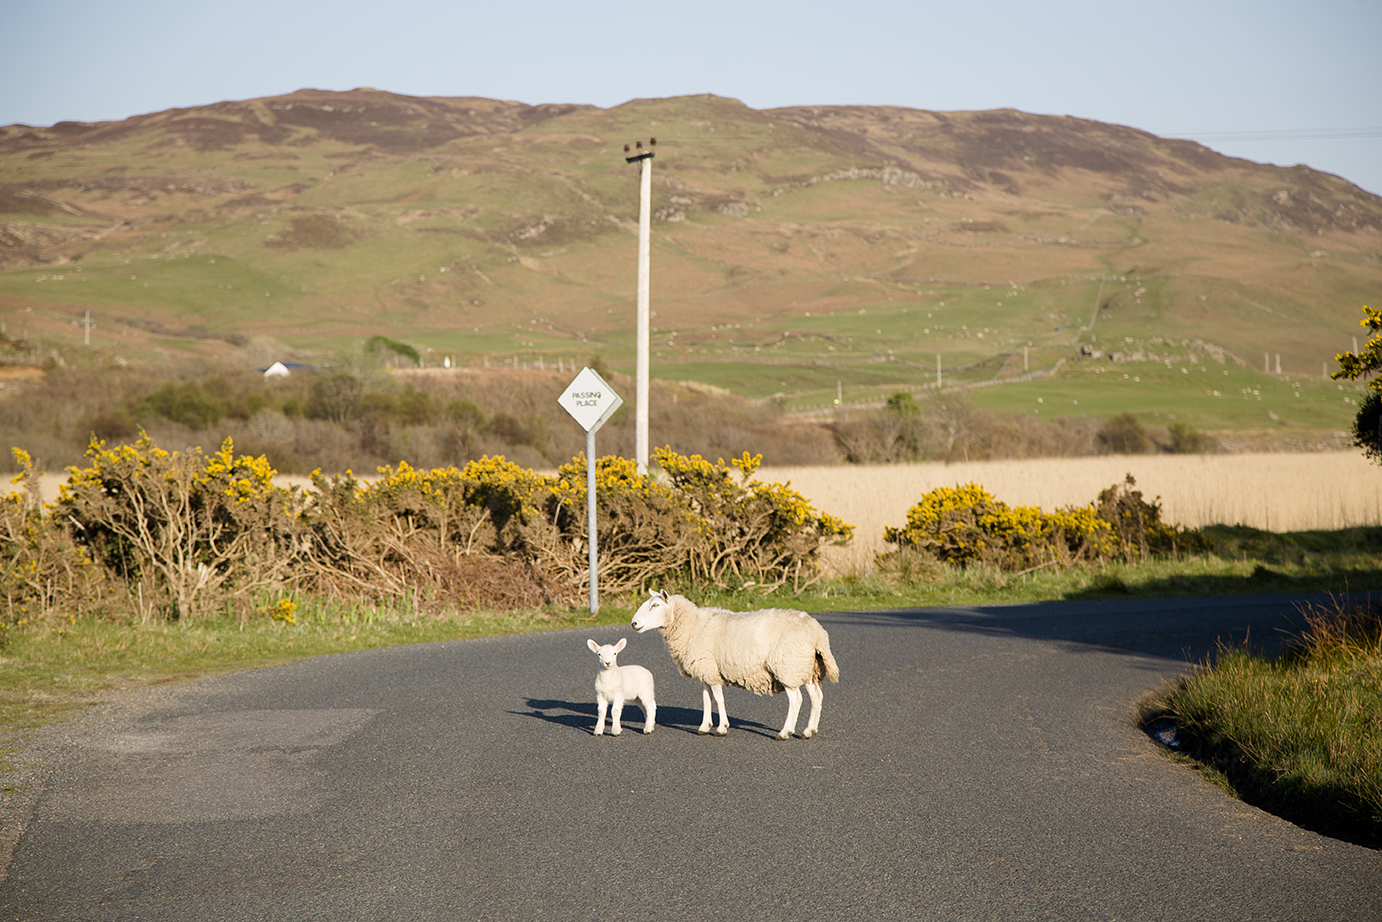 A sheep and a lamb cross a road in the rural landscape.